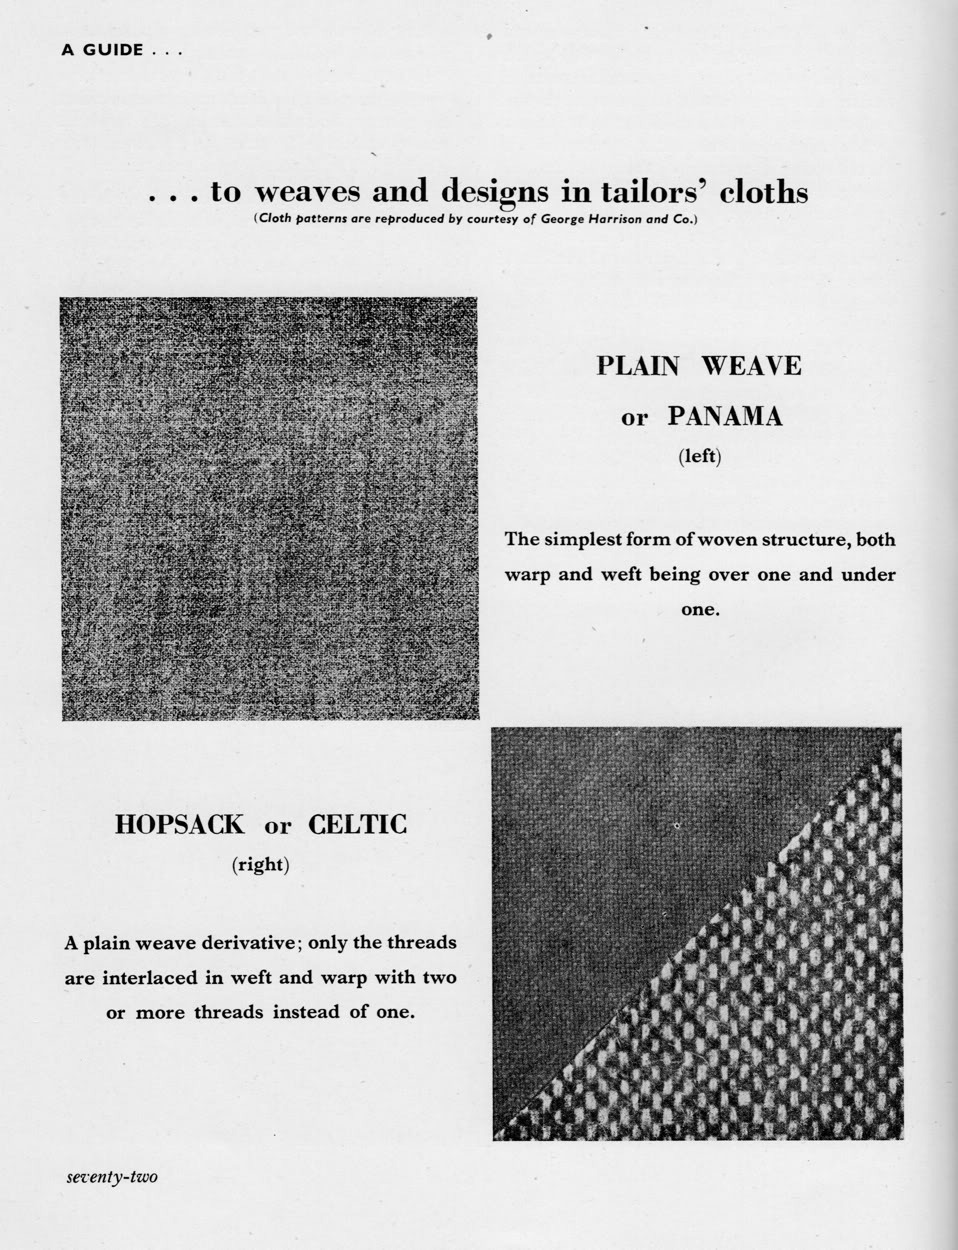 Learning Basic Patterns and Weaves